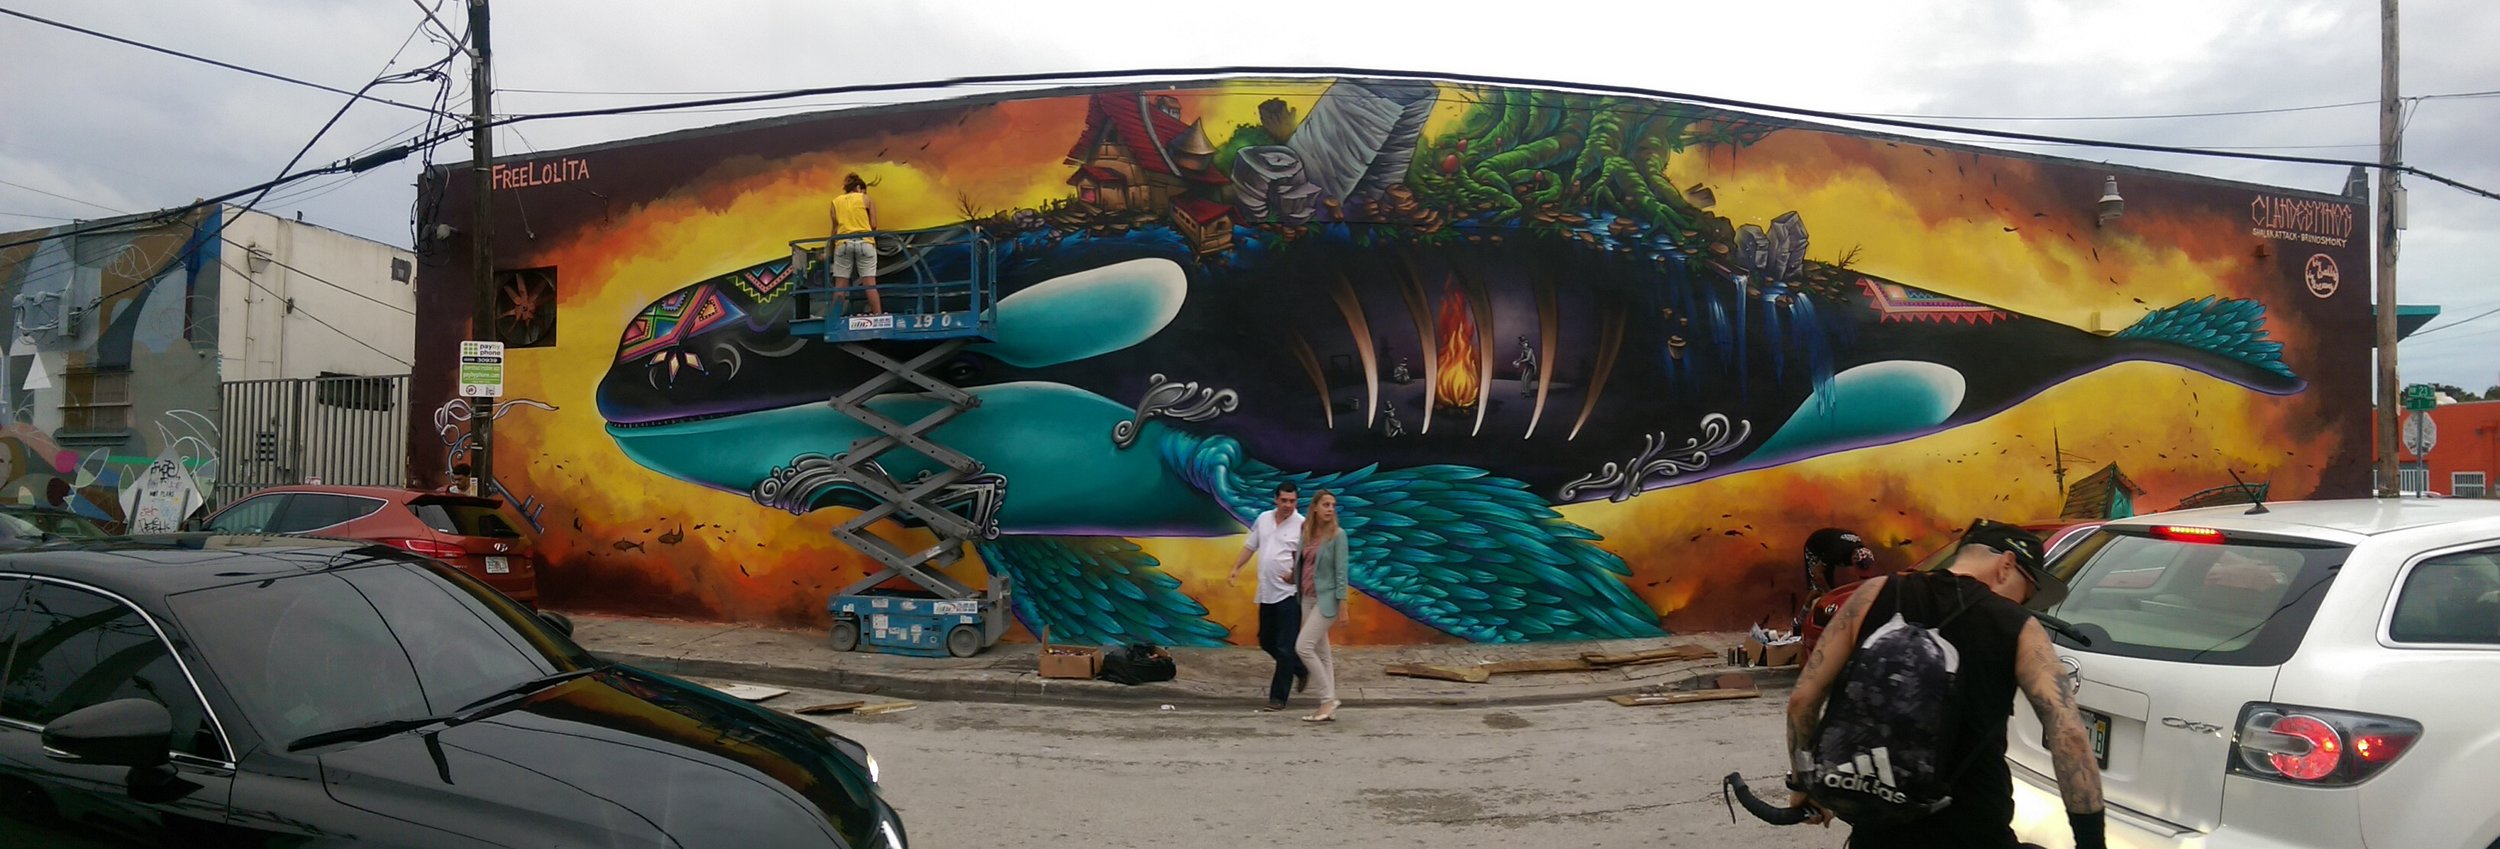 wynwood whale